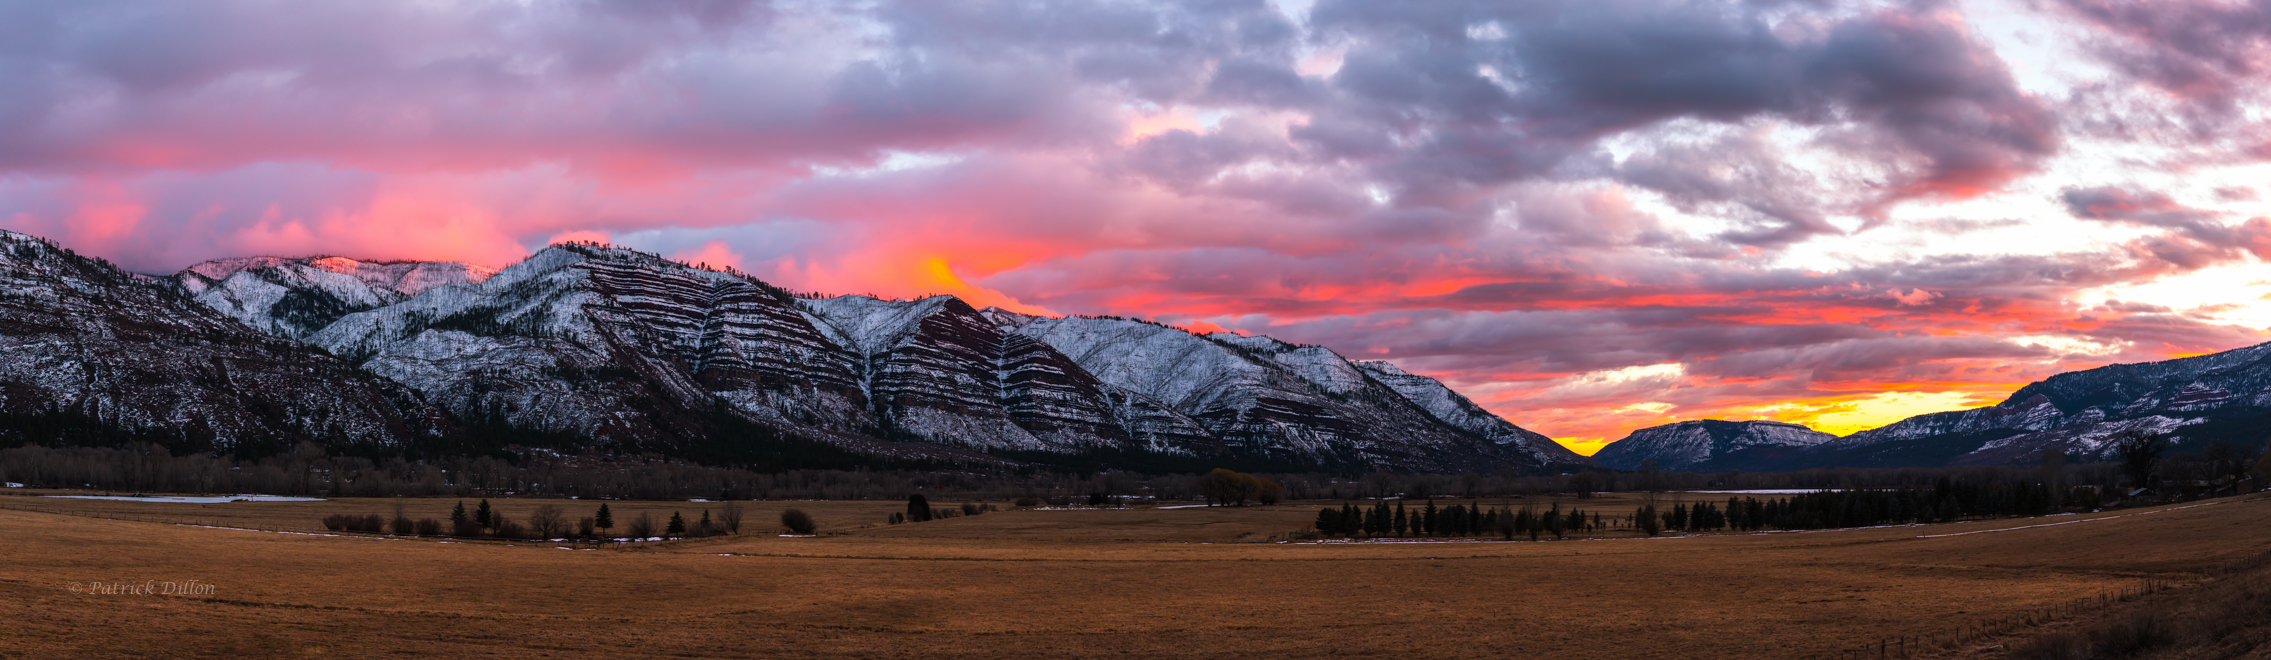 Animas Valley sunset